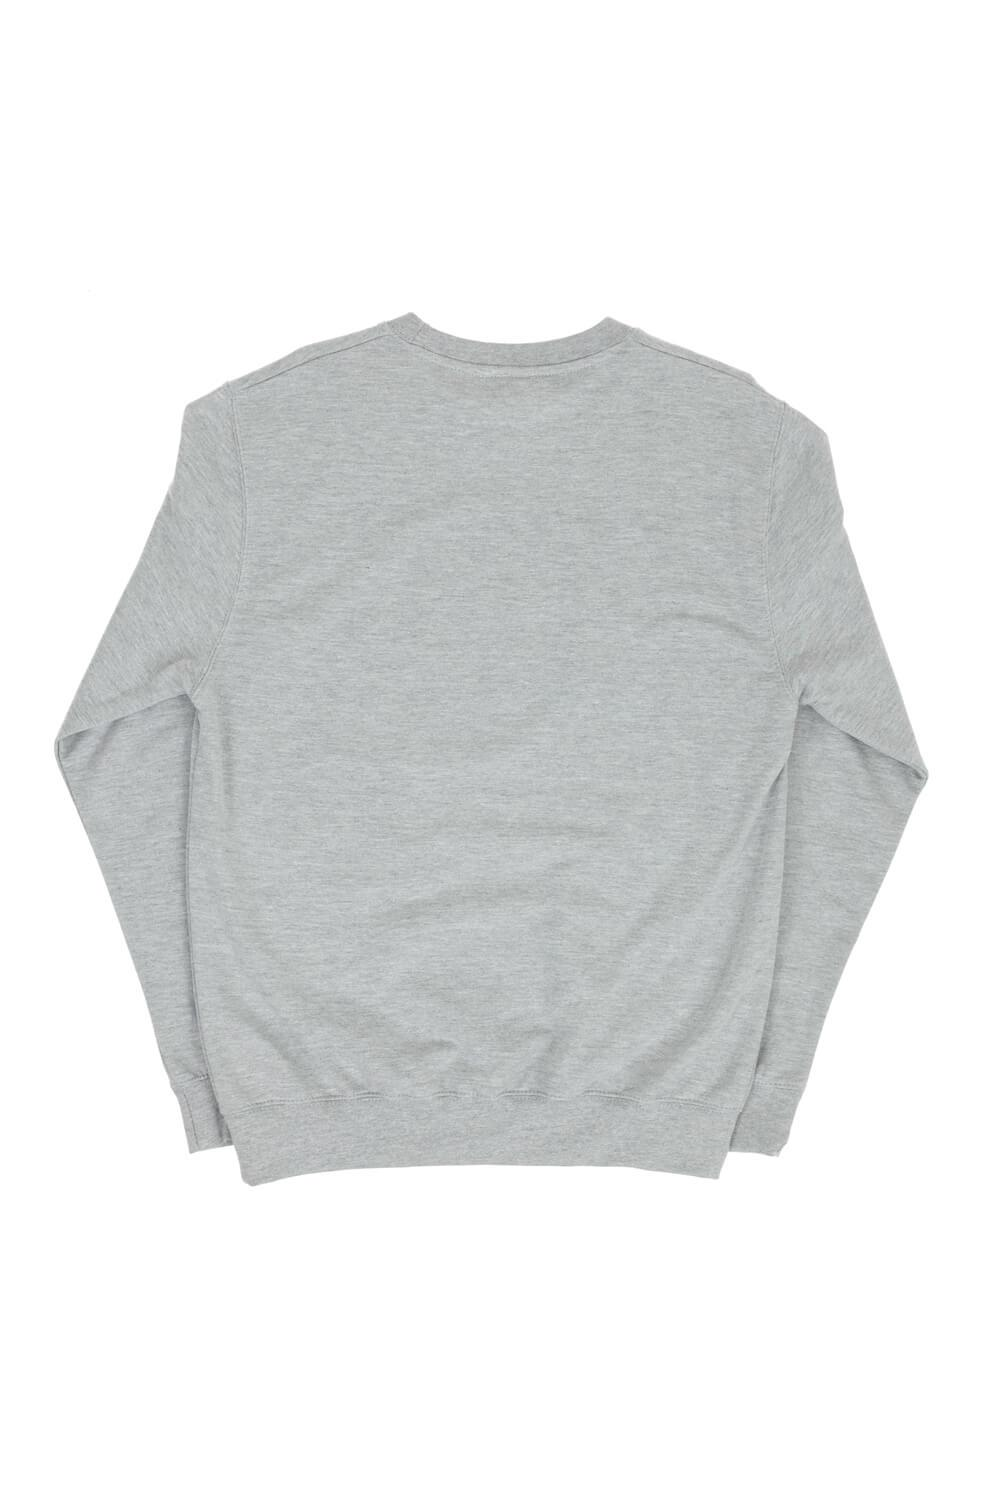 Bok Bear Sweatshirt Grey